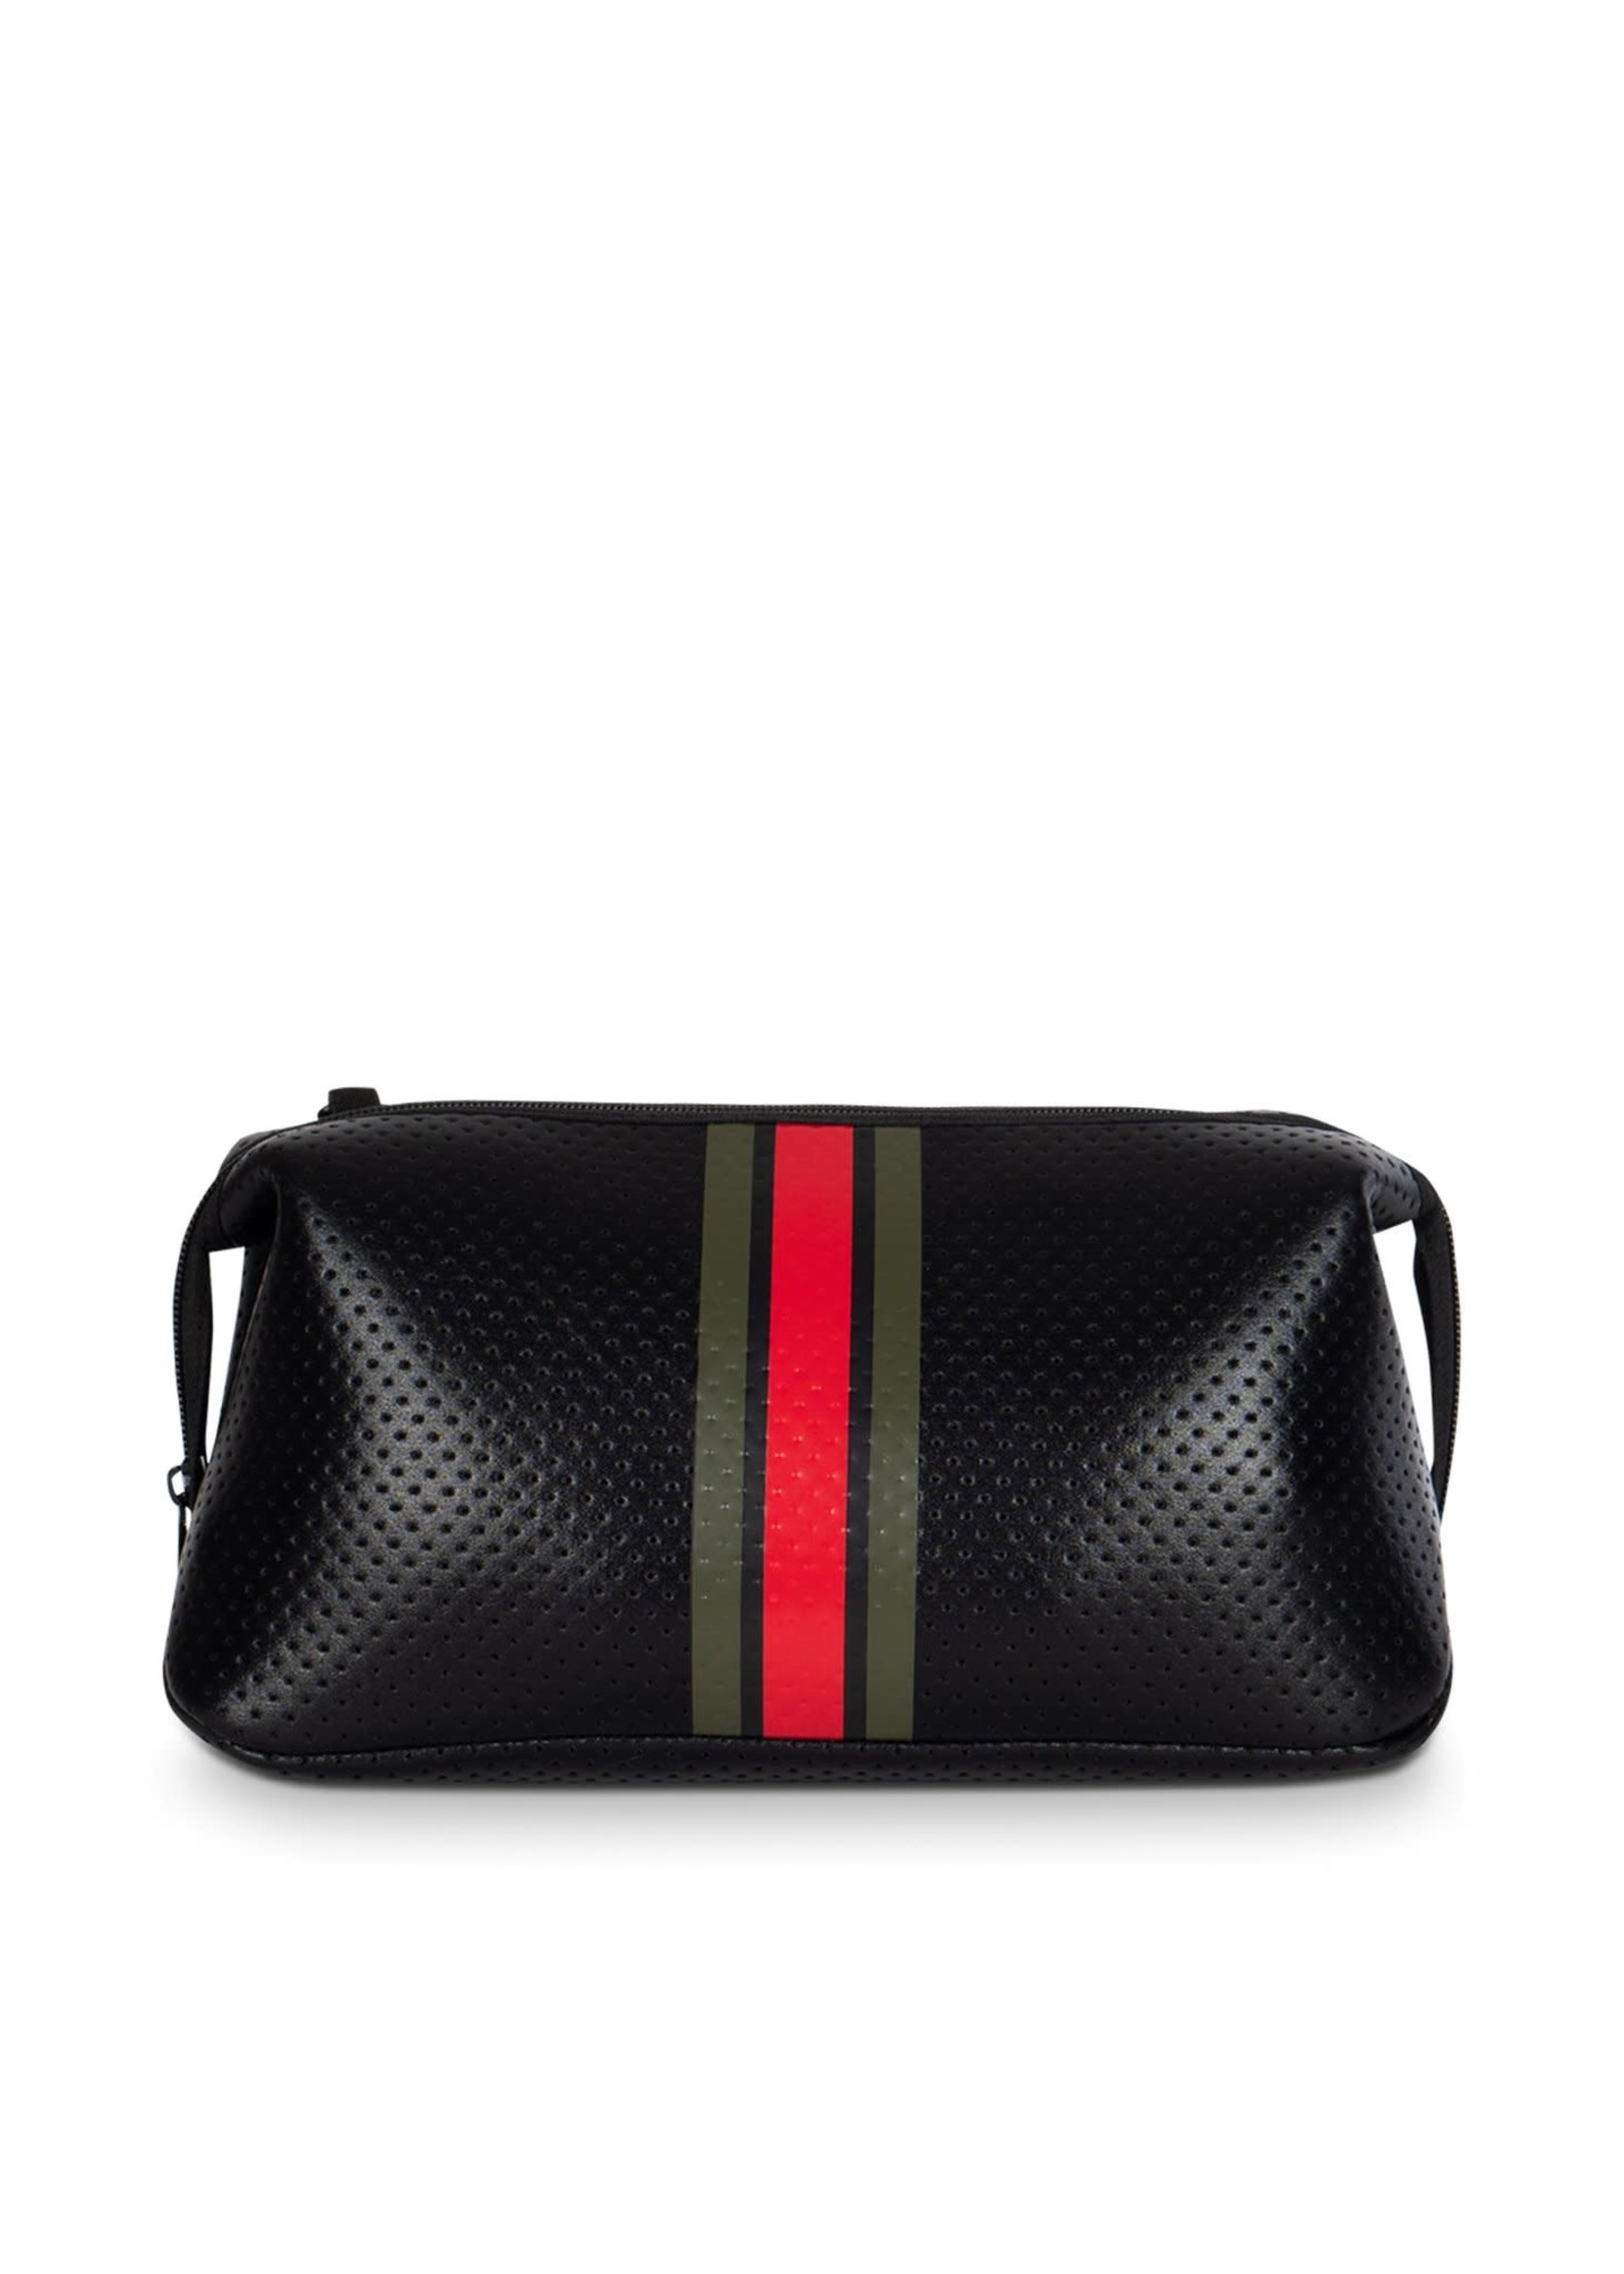 Kyle Travel Pouch Black Army Green/Red Stripe